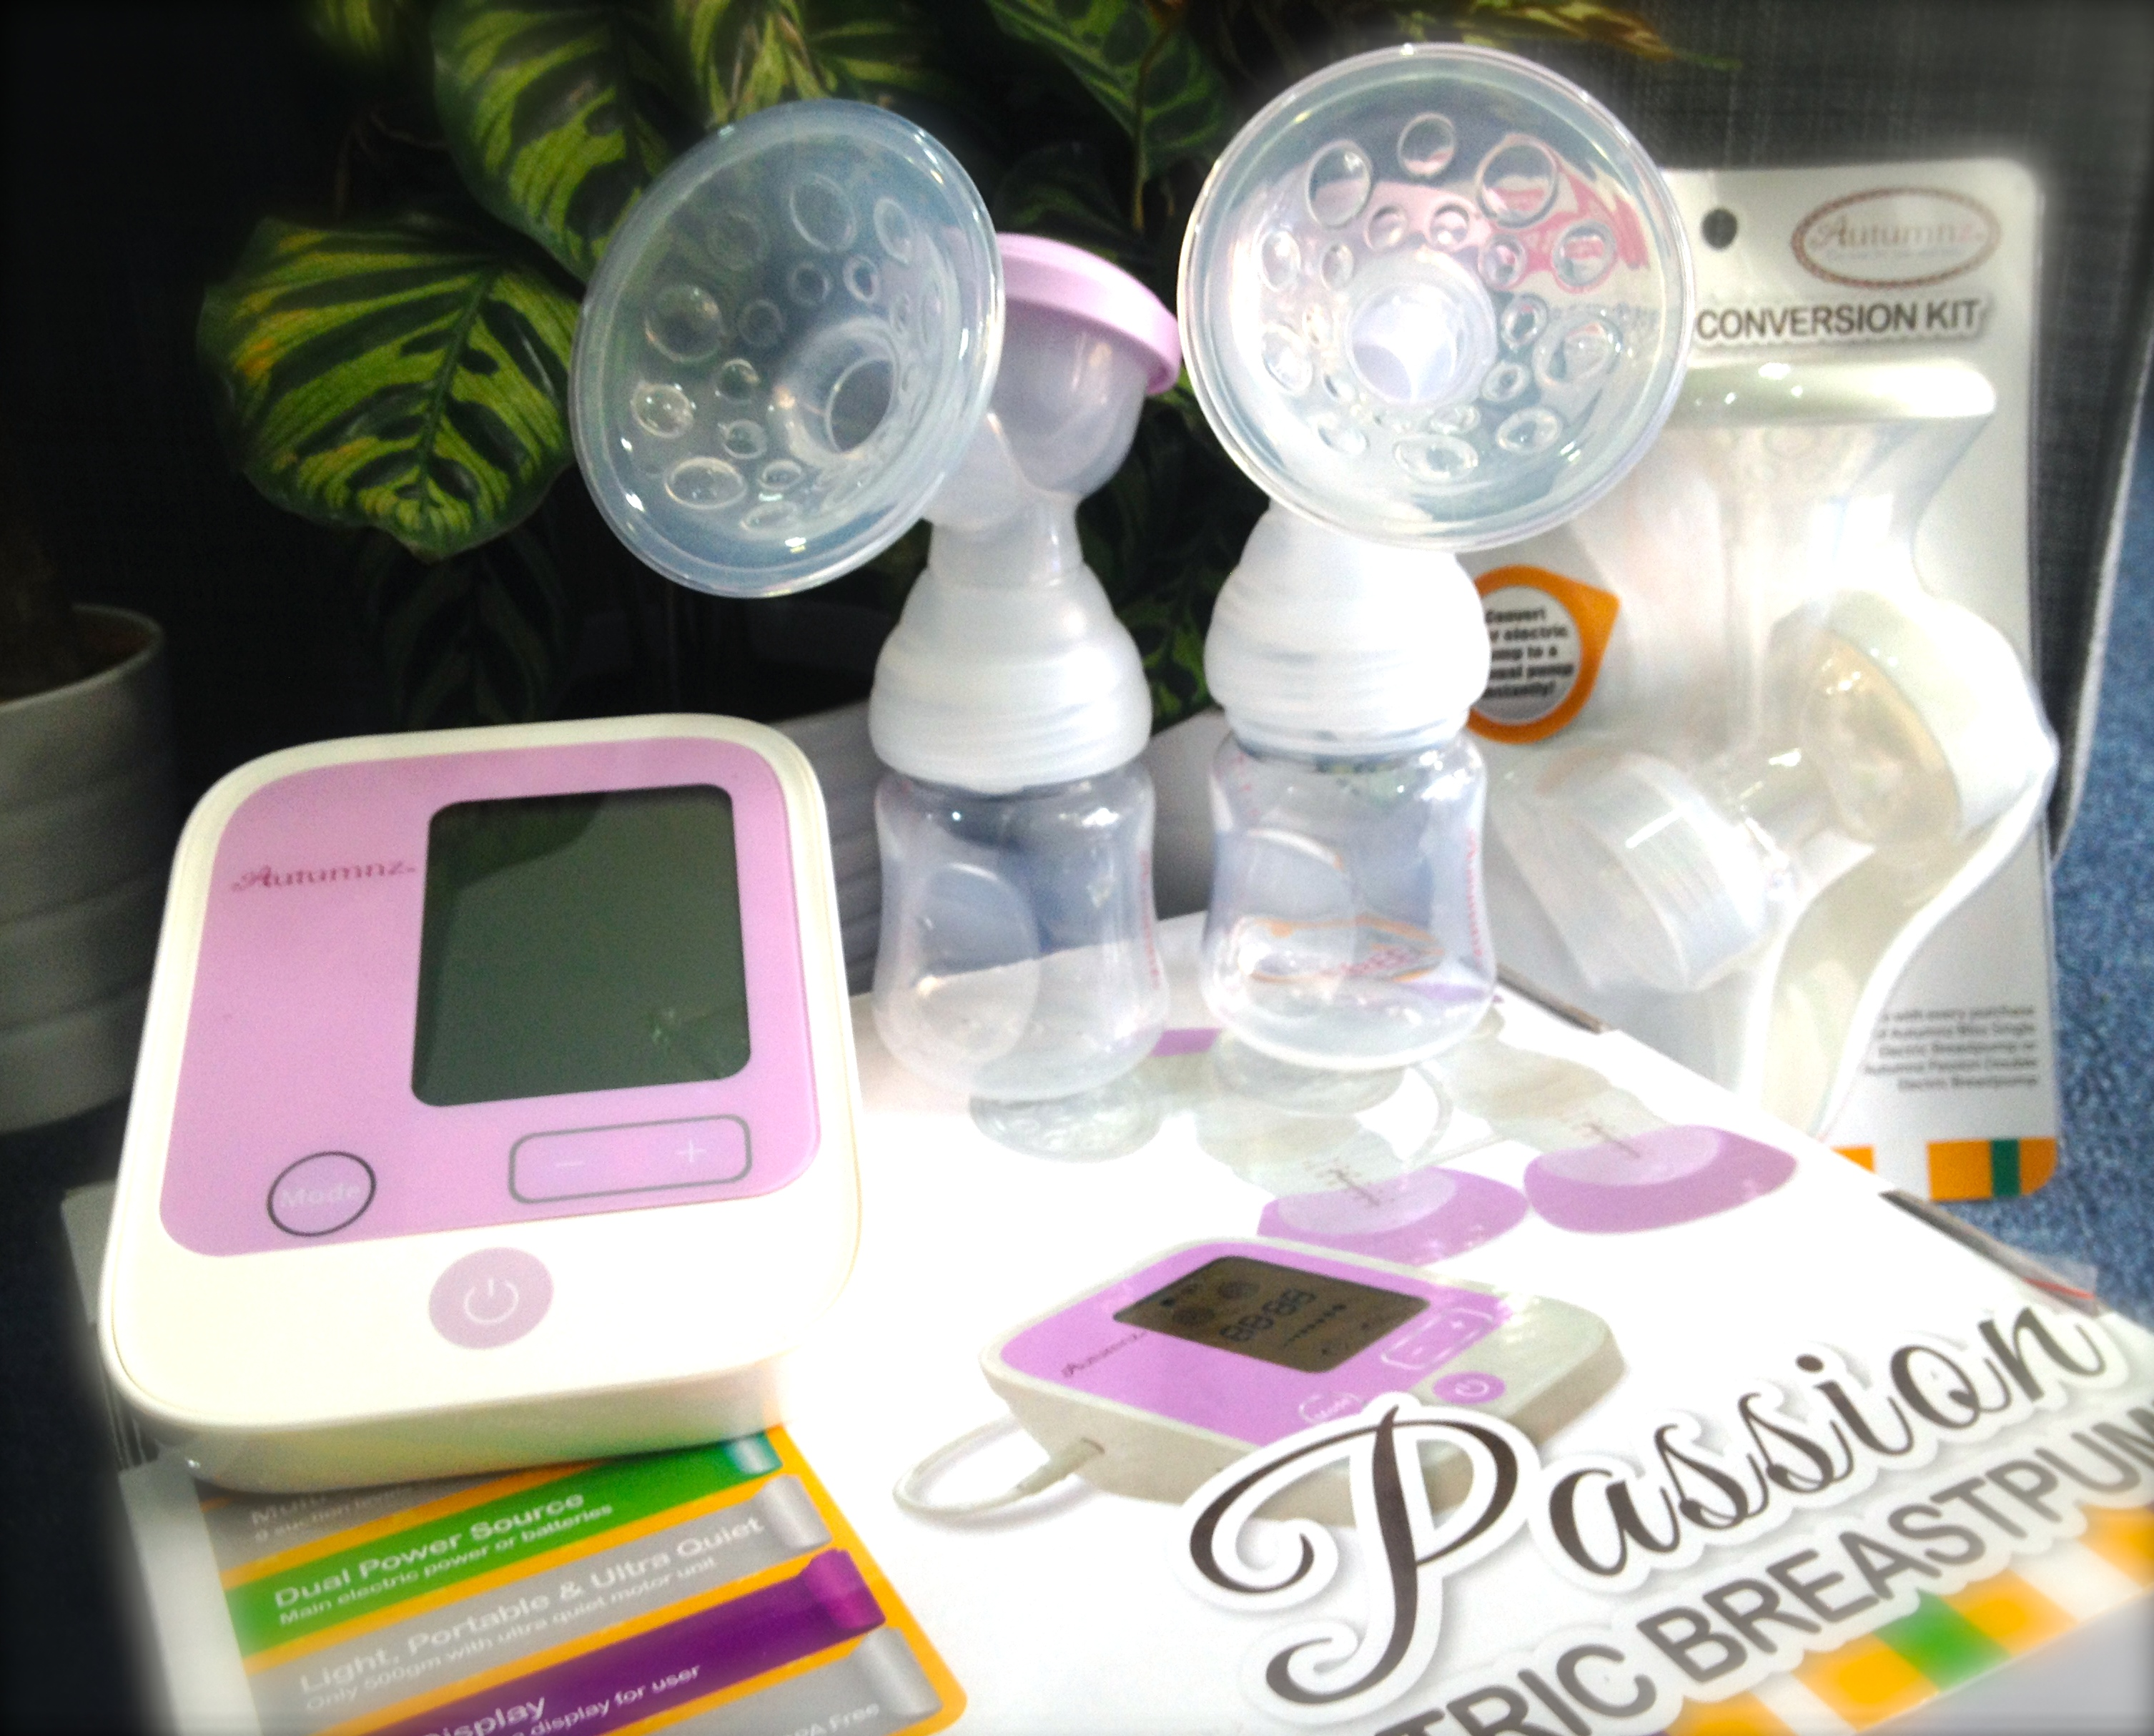 Autumnz Passion Double electric breast pump